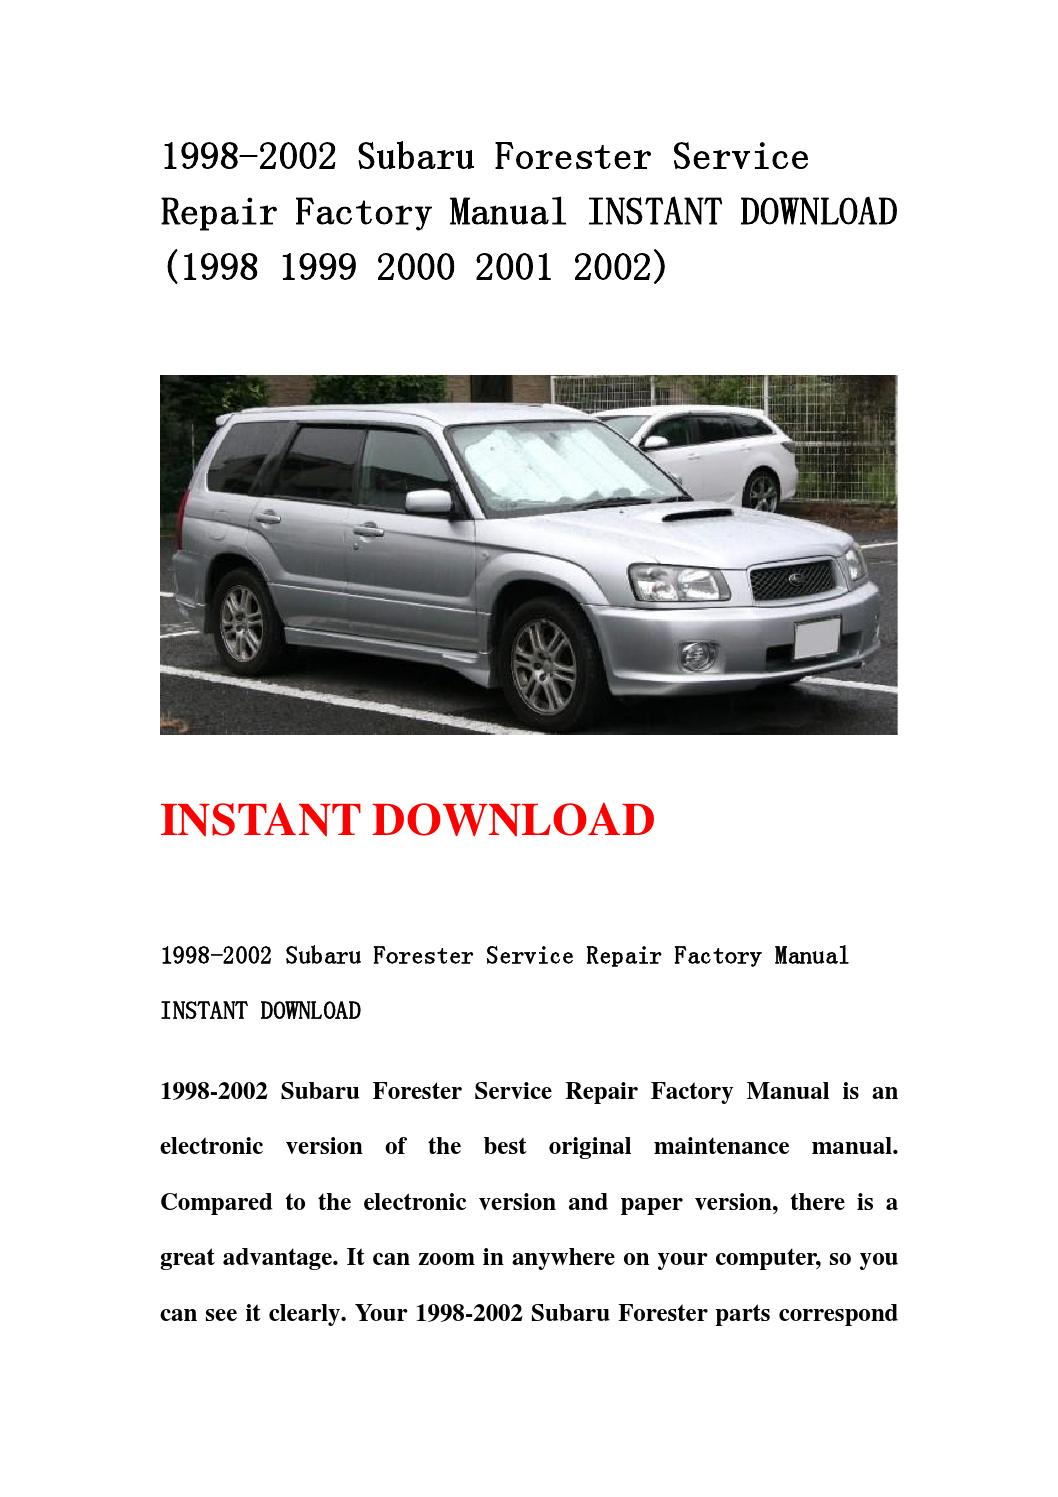 1998 2002 subaru forester service repair factory manual instant download  (1998 1999 2000 2001 2002) by fvgbtg - issuu